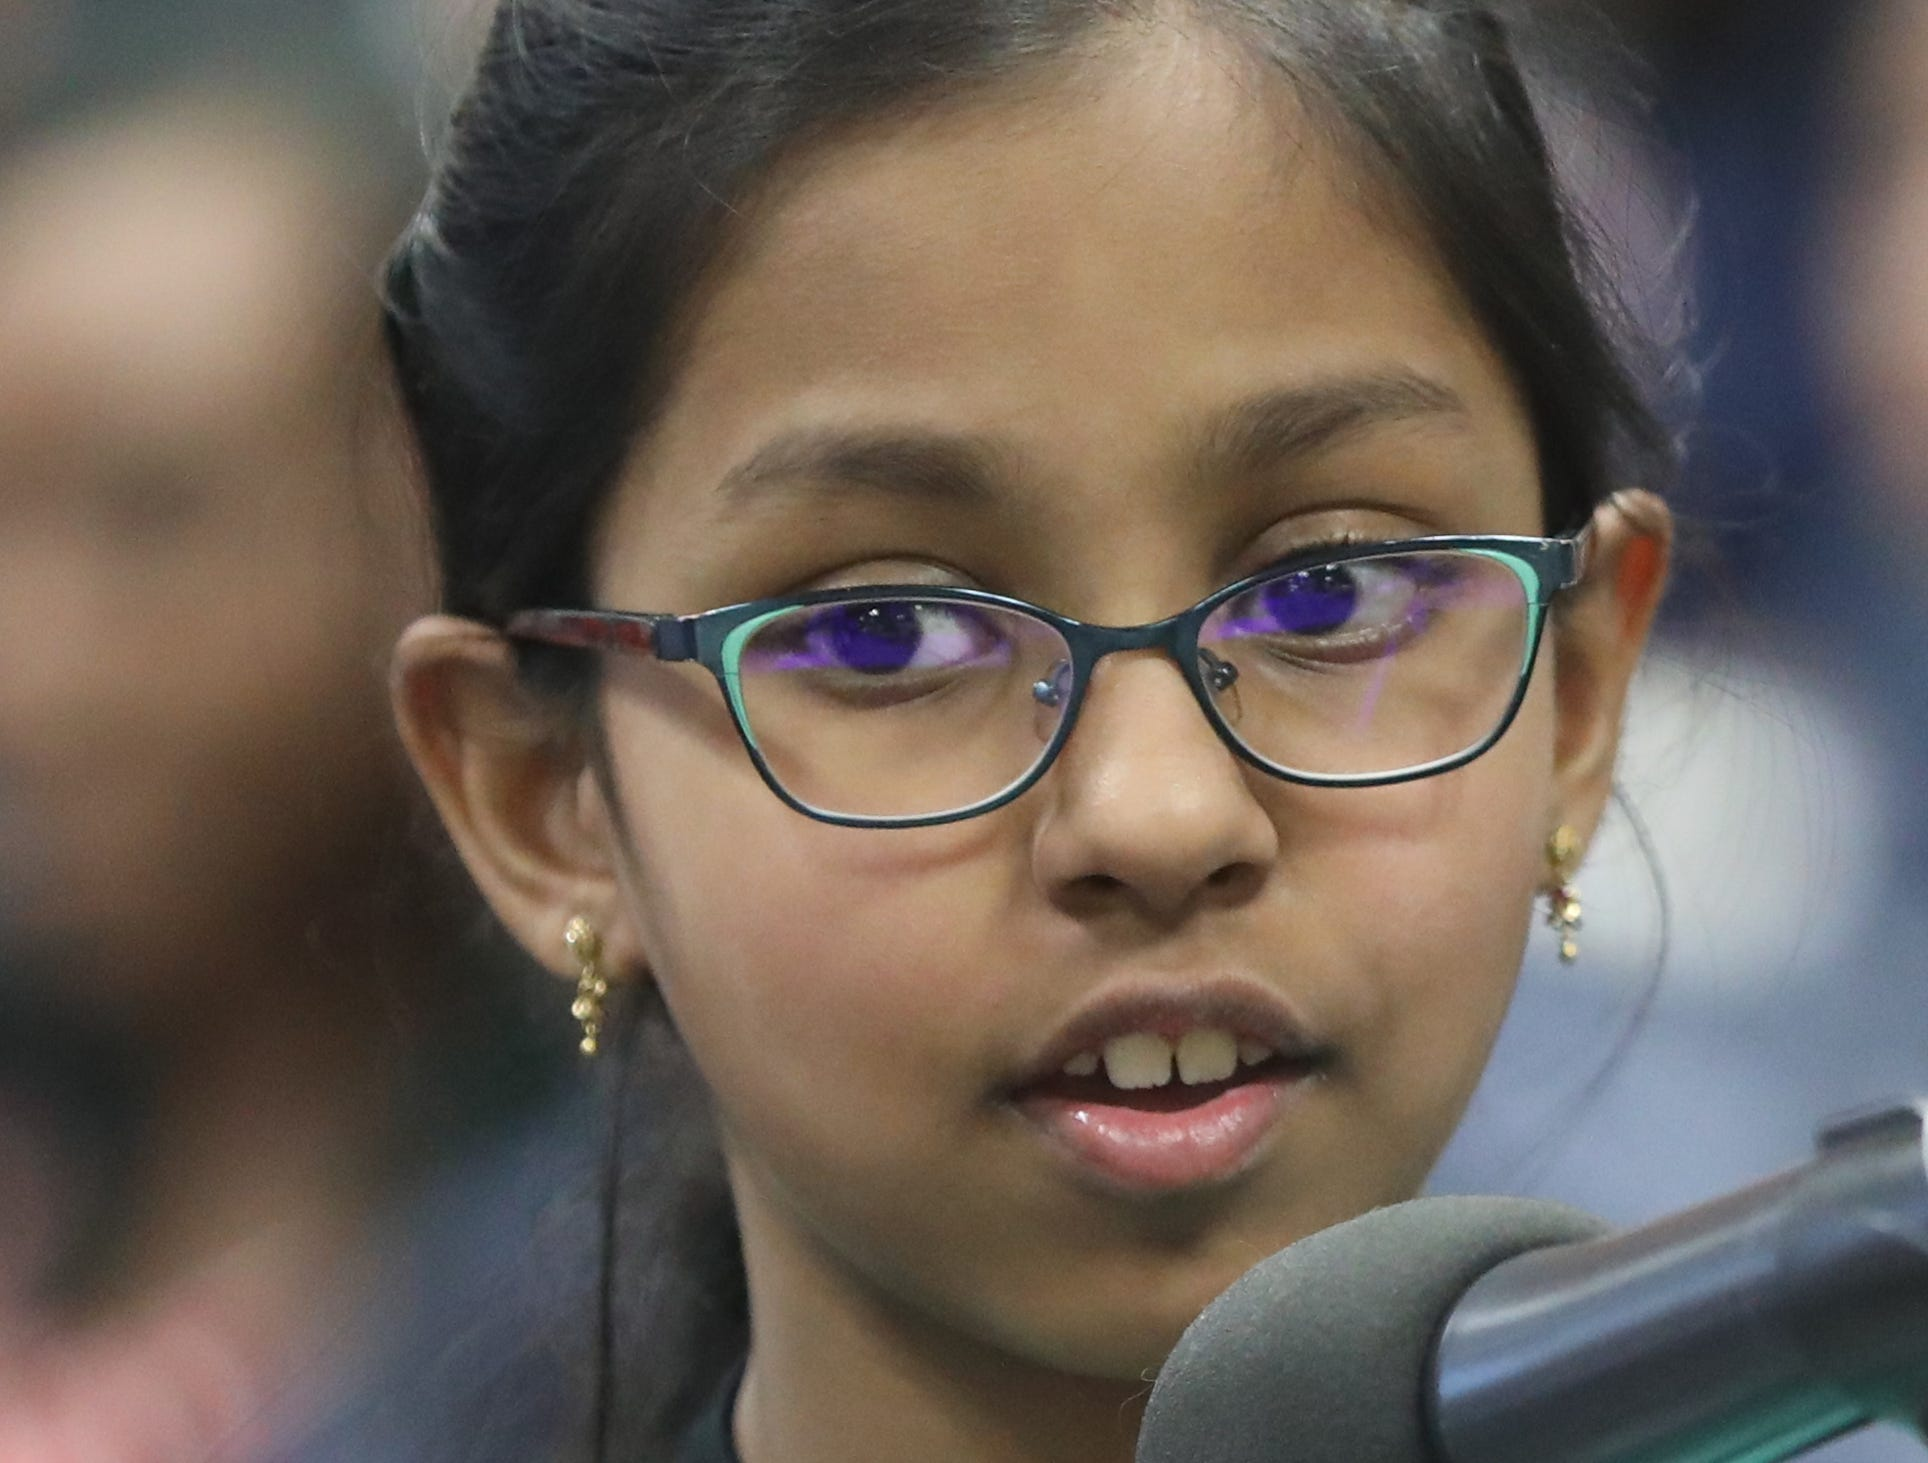 Aasiba Sherin Mohamed Dhakir Hussain, of Hackensack, competes in the first round of the 2019 North Jersey Spelling Bee, in Paramus. Thursday, March 14, 2019